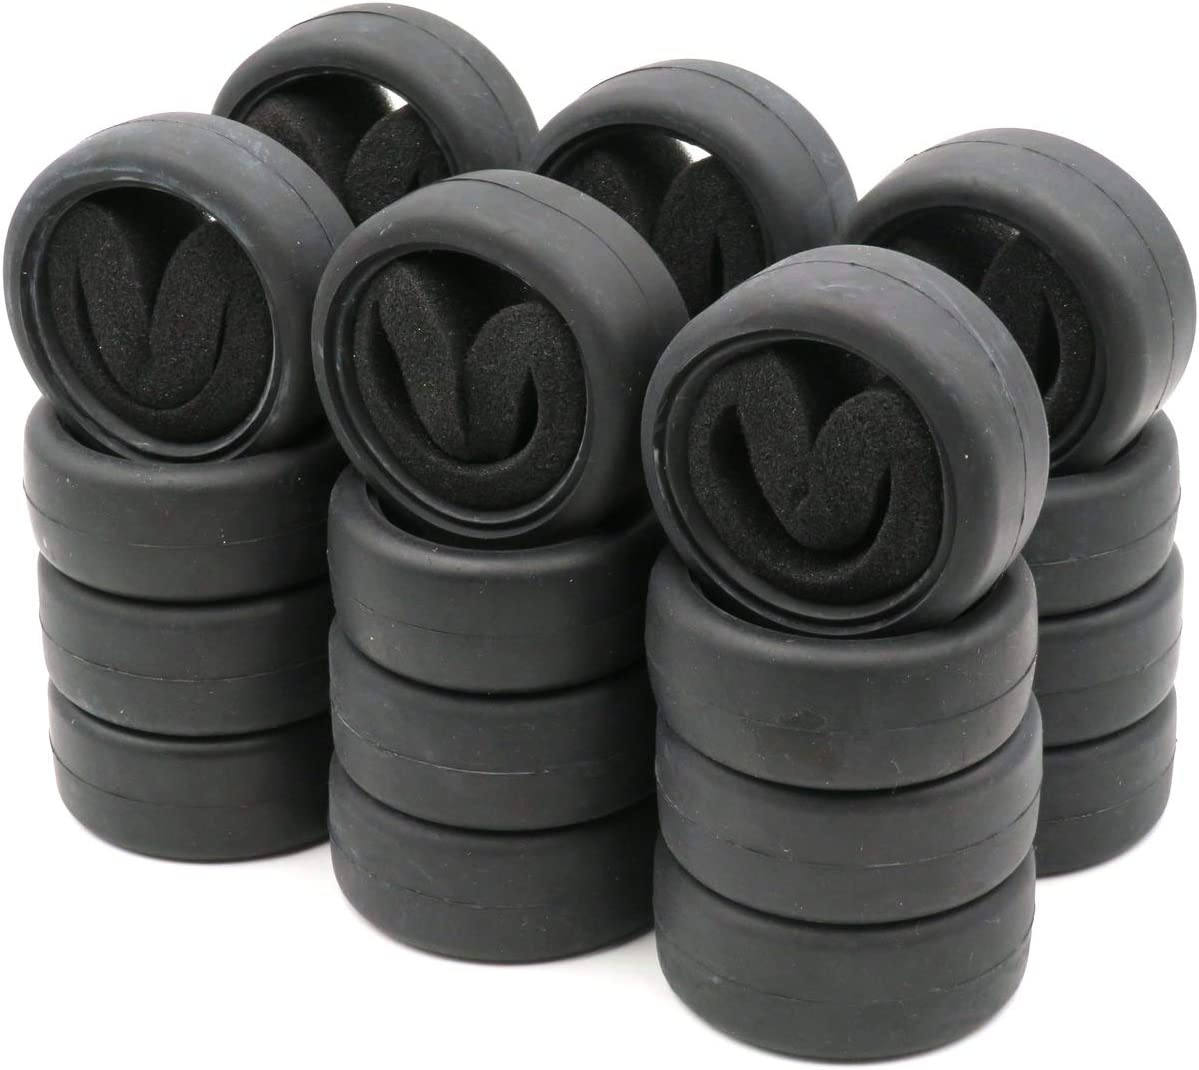 24pcs 1//10 on road Touring Tires /& hex 12mm Wheels rims For RC 1:10 Racing Car